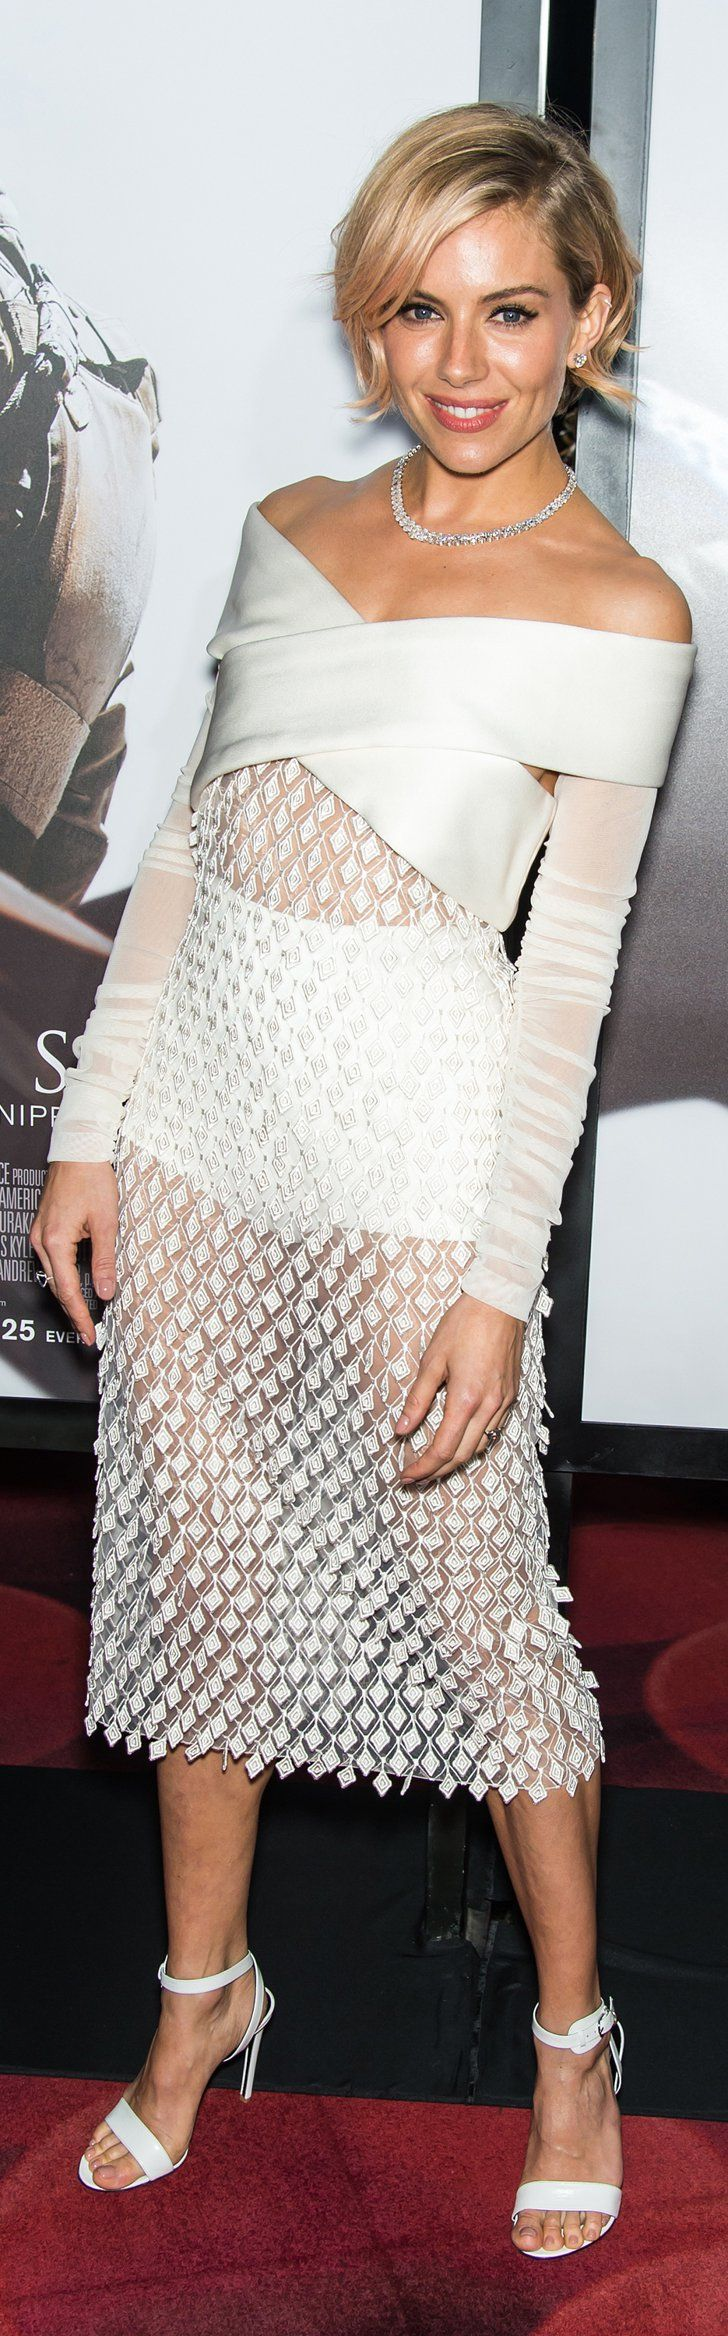 Pin for Later: What Would It Take For You to Wear a See-Through Dress?